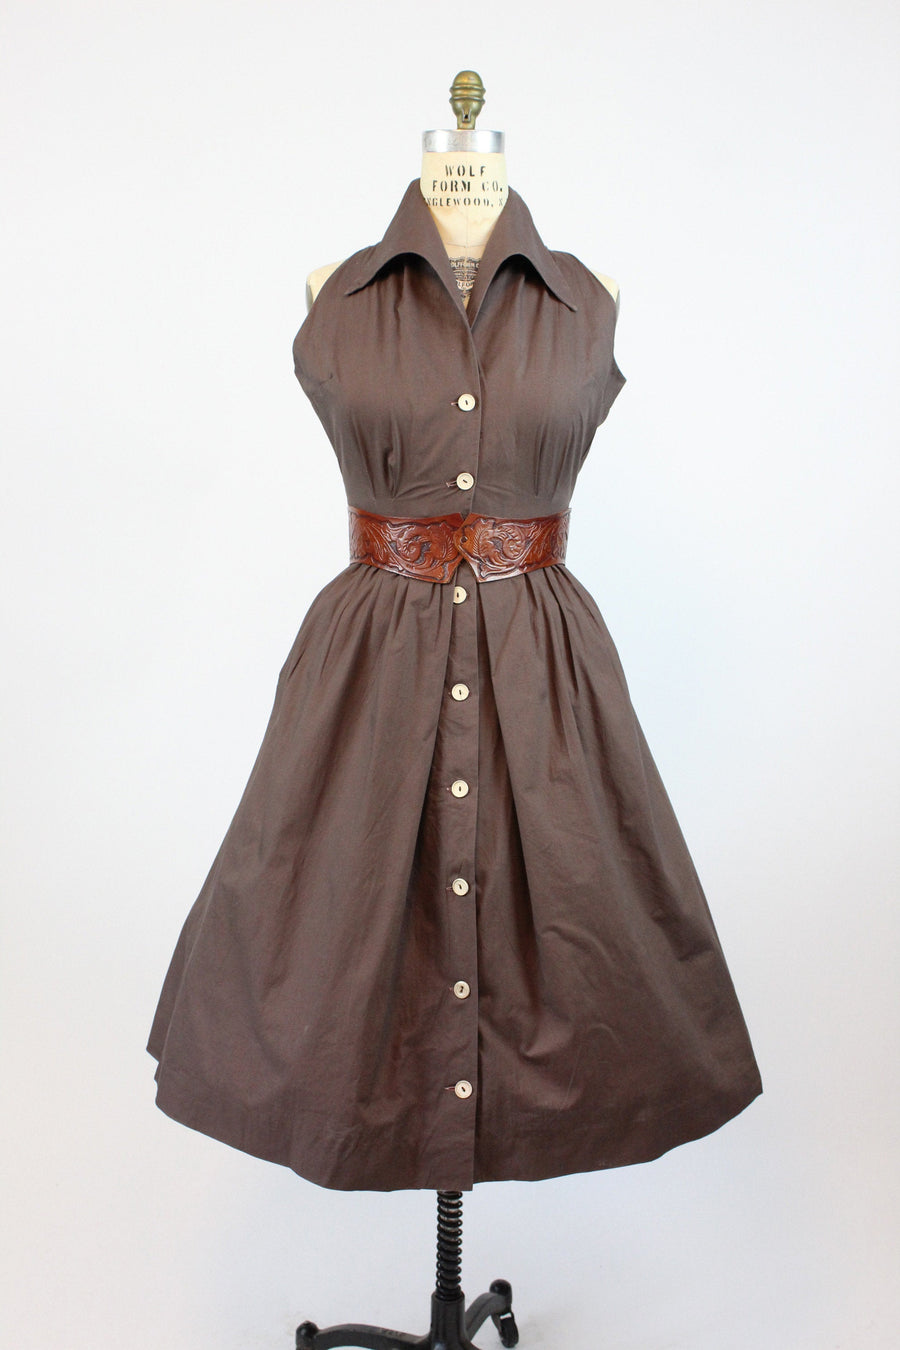 1950s cut in shoulders shirtwaist dress medium | vintage cotton dress | new in